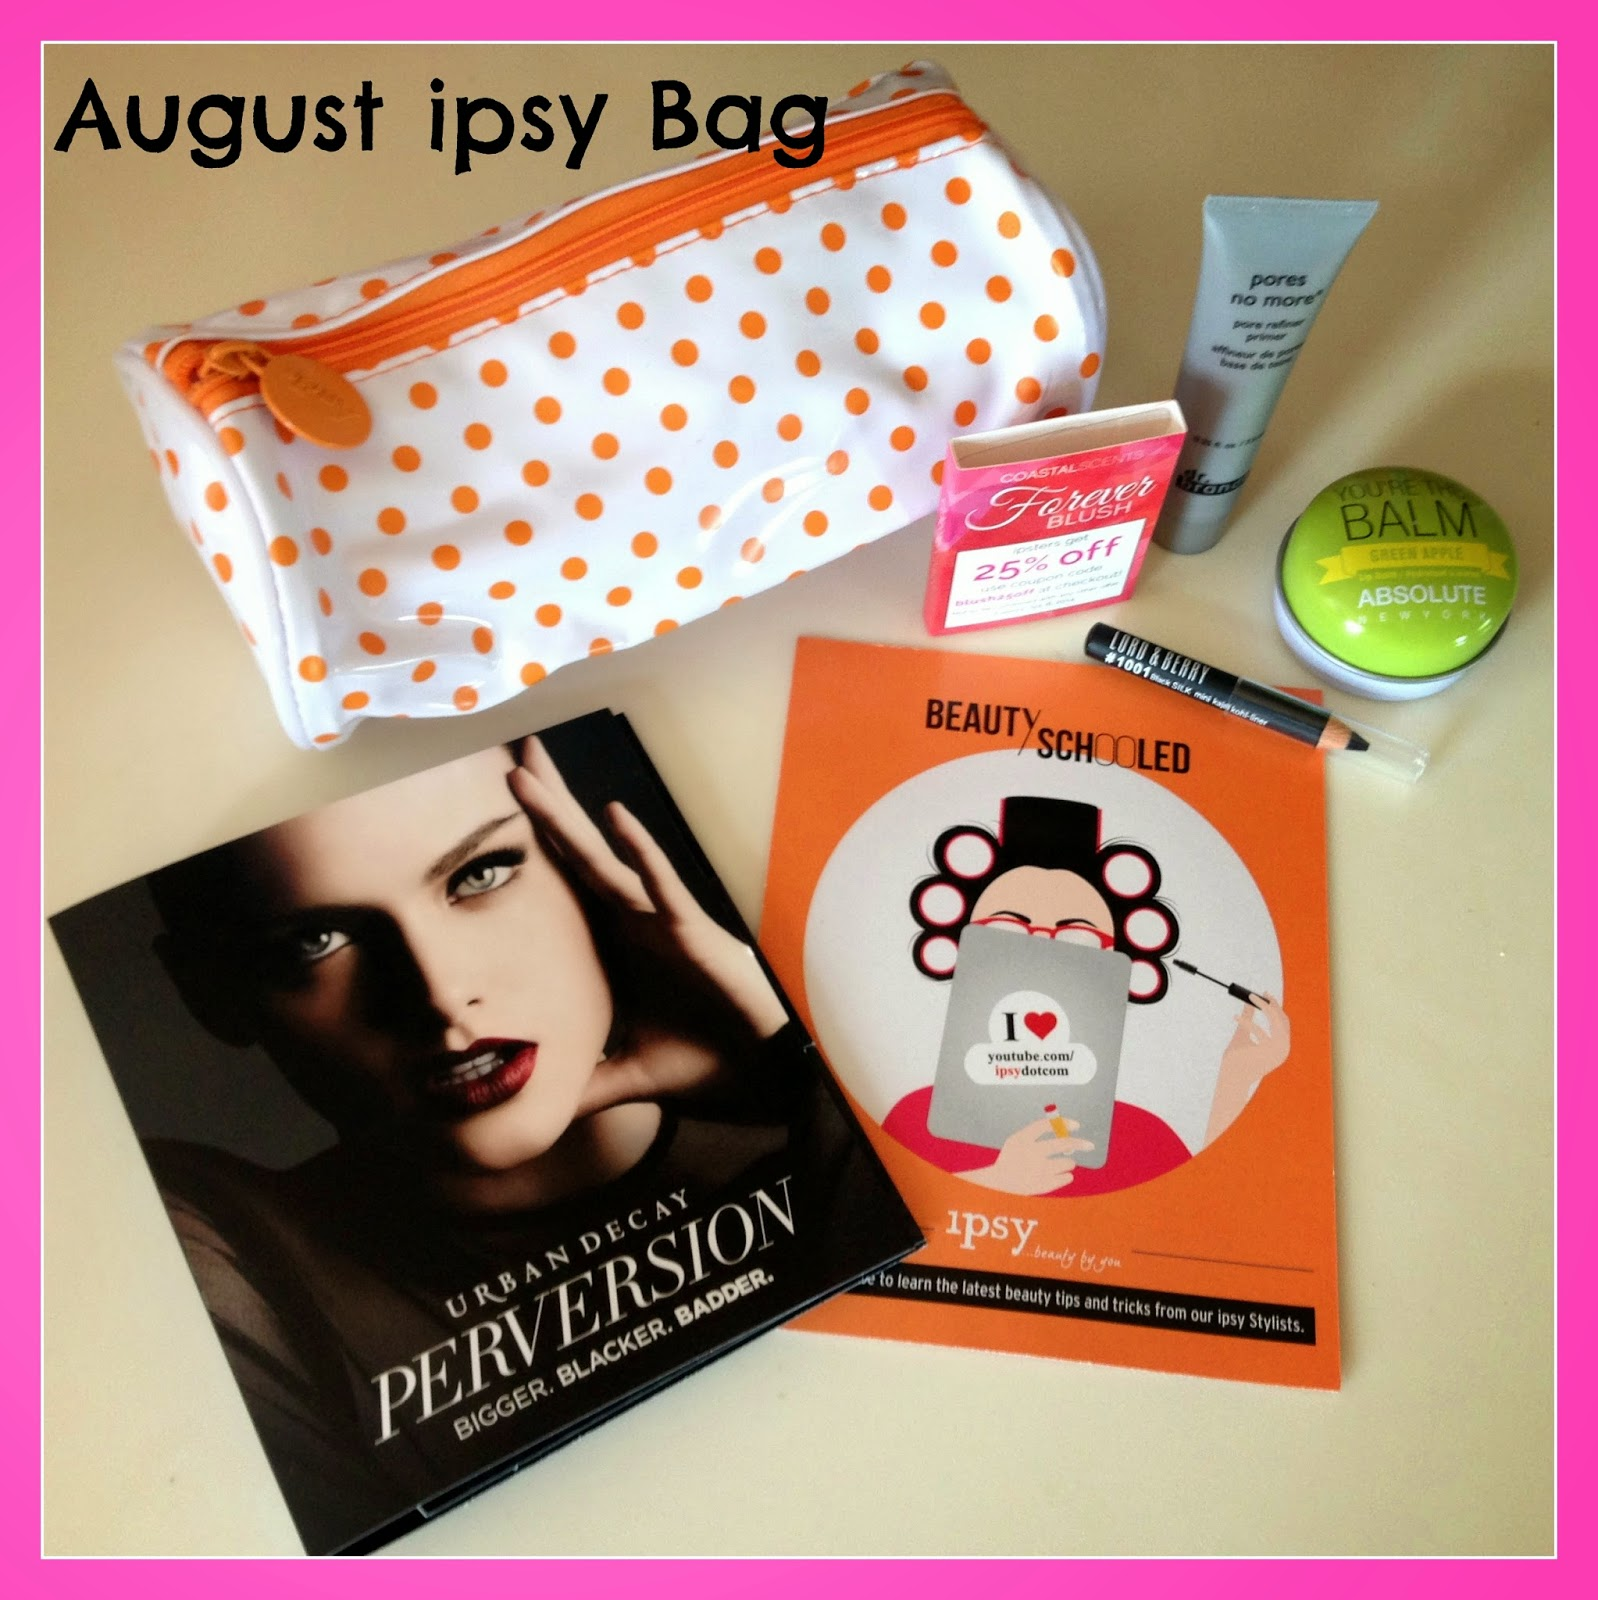 Ipsy Glam Bag Review - August 2014 - Doused in Pink | Chicago Style Blog